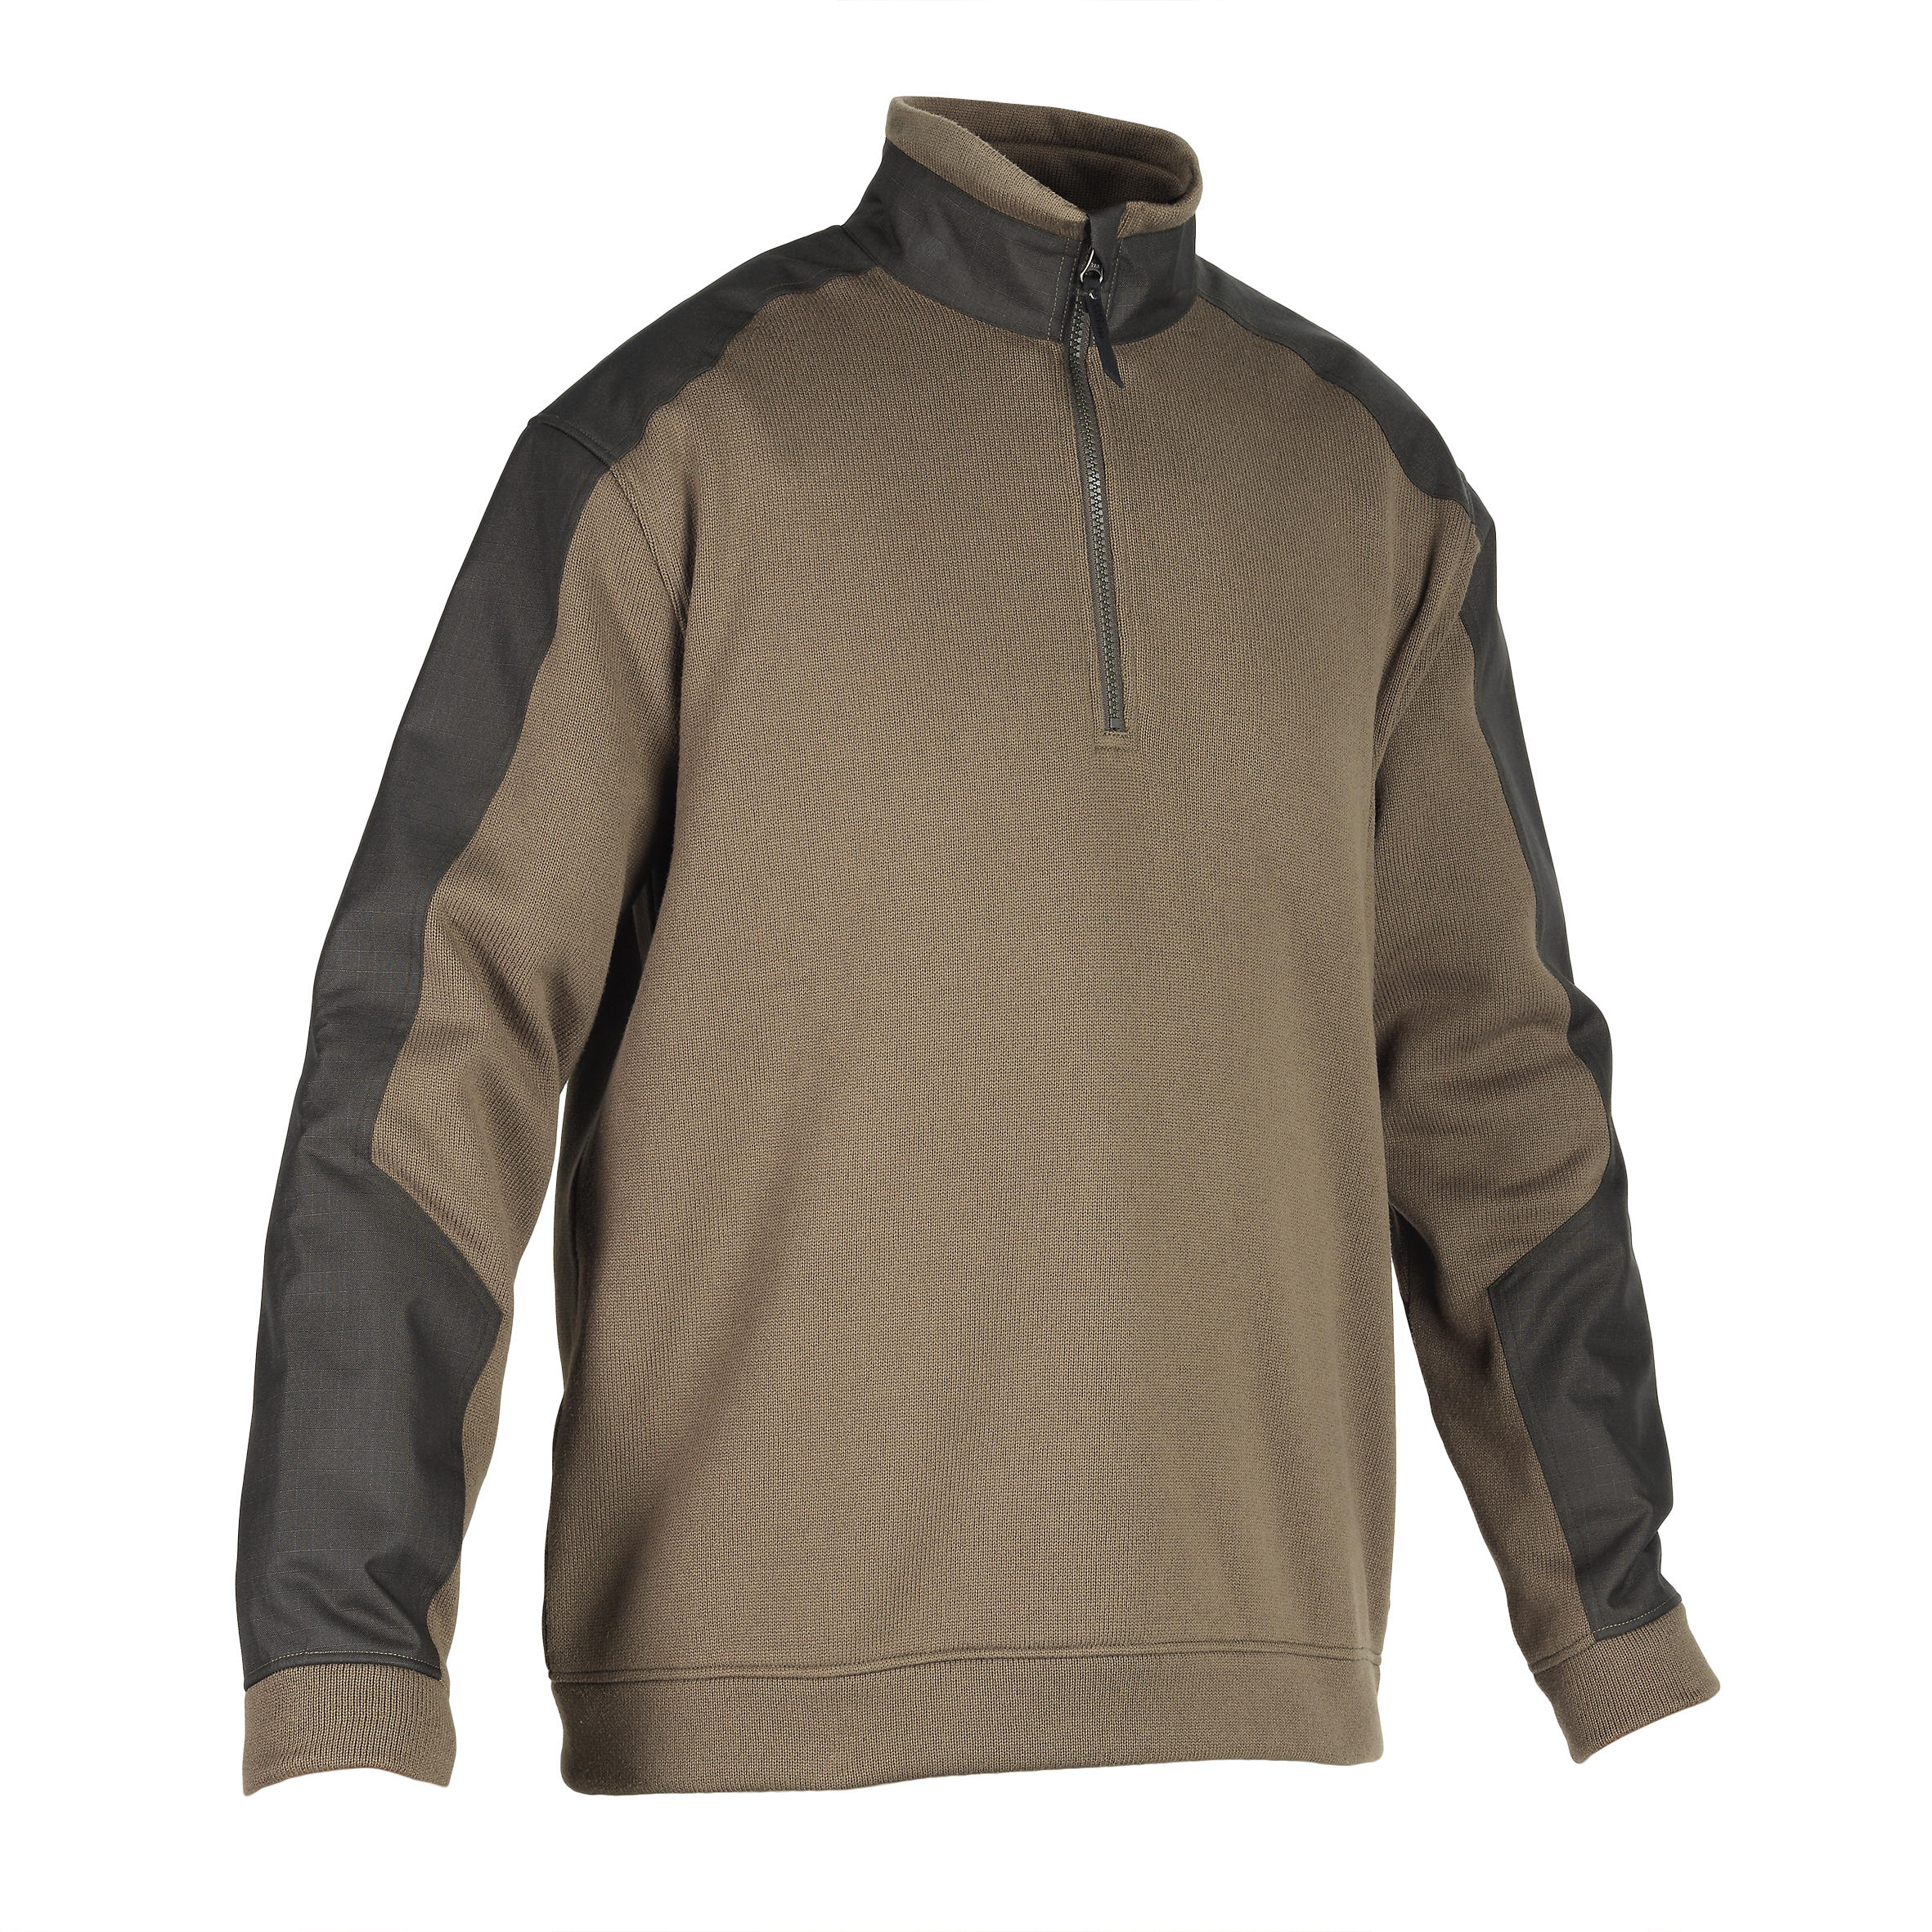 TRICOT CHASSE RENFORT 500